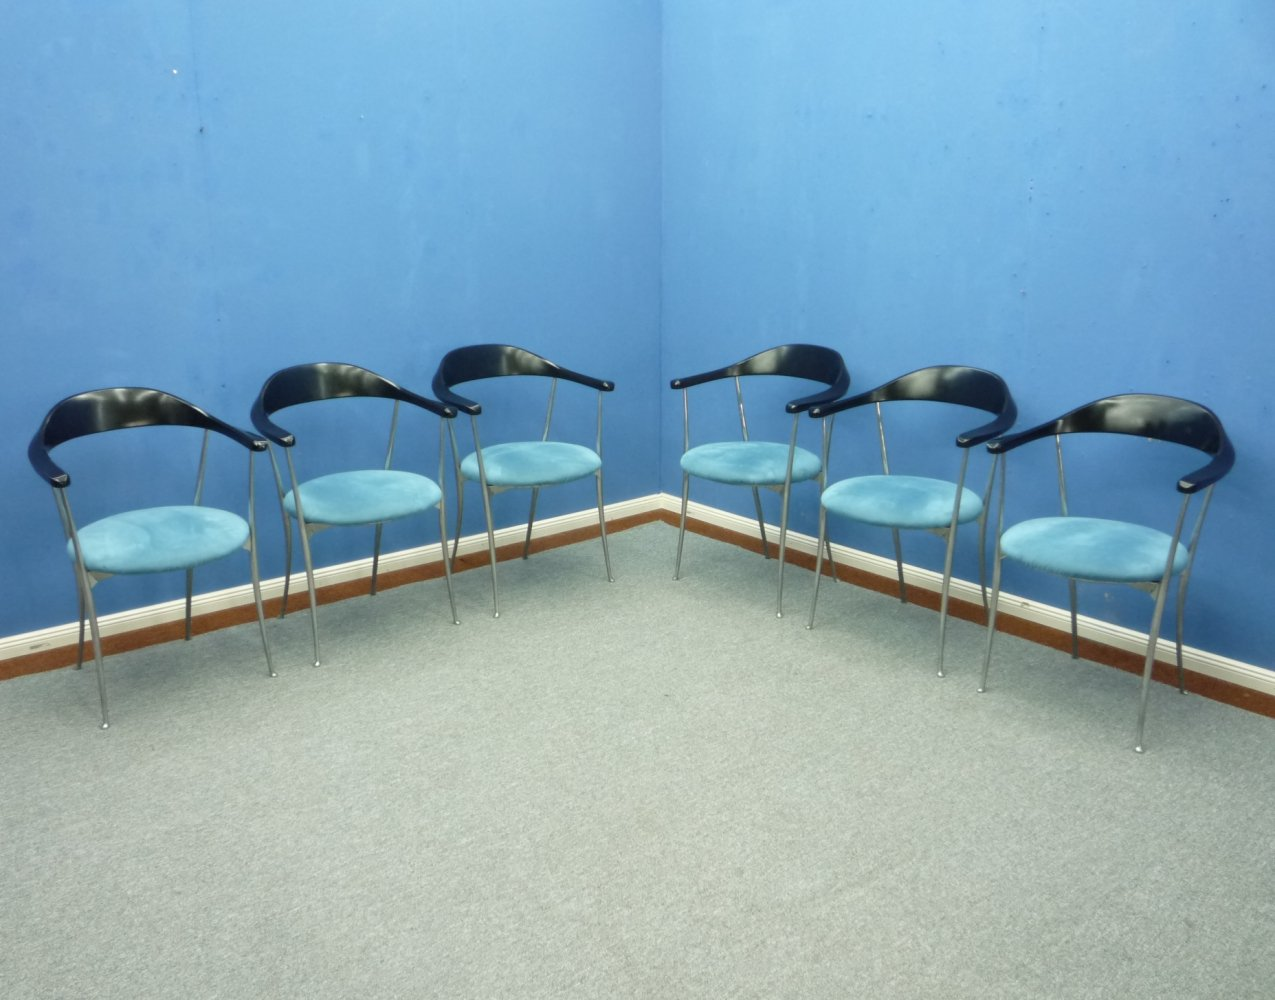 Set of 6 Dining Room Chairs by Enzo Mari for Zanotta, Italy 1980s